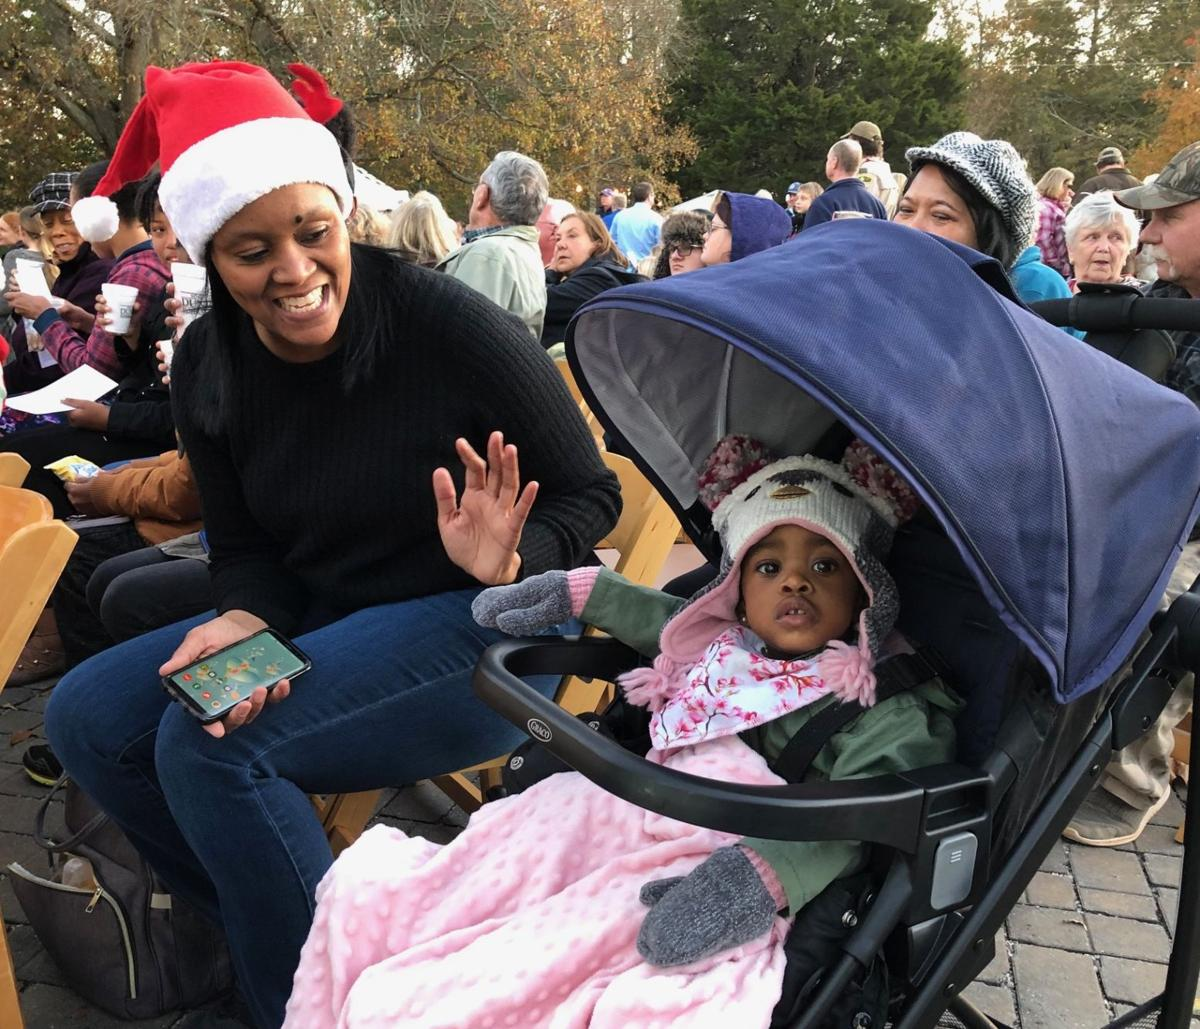 When Is The Christmas Parade In Columbia Sc 2020 Blythewood christmas parade 2020 | Transfiguration Council #13713